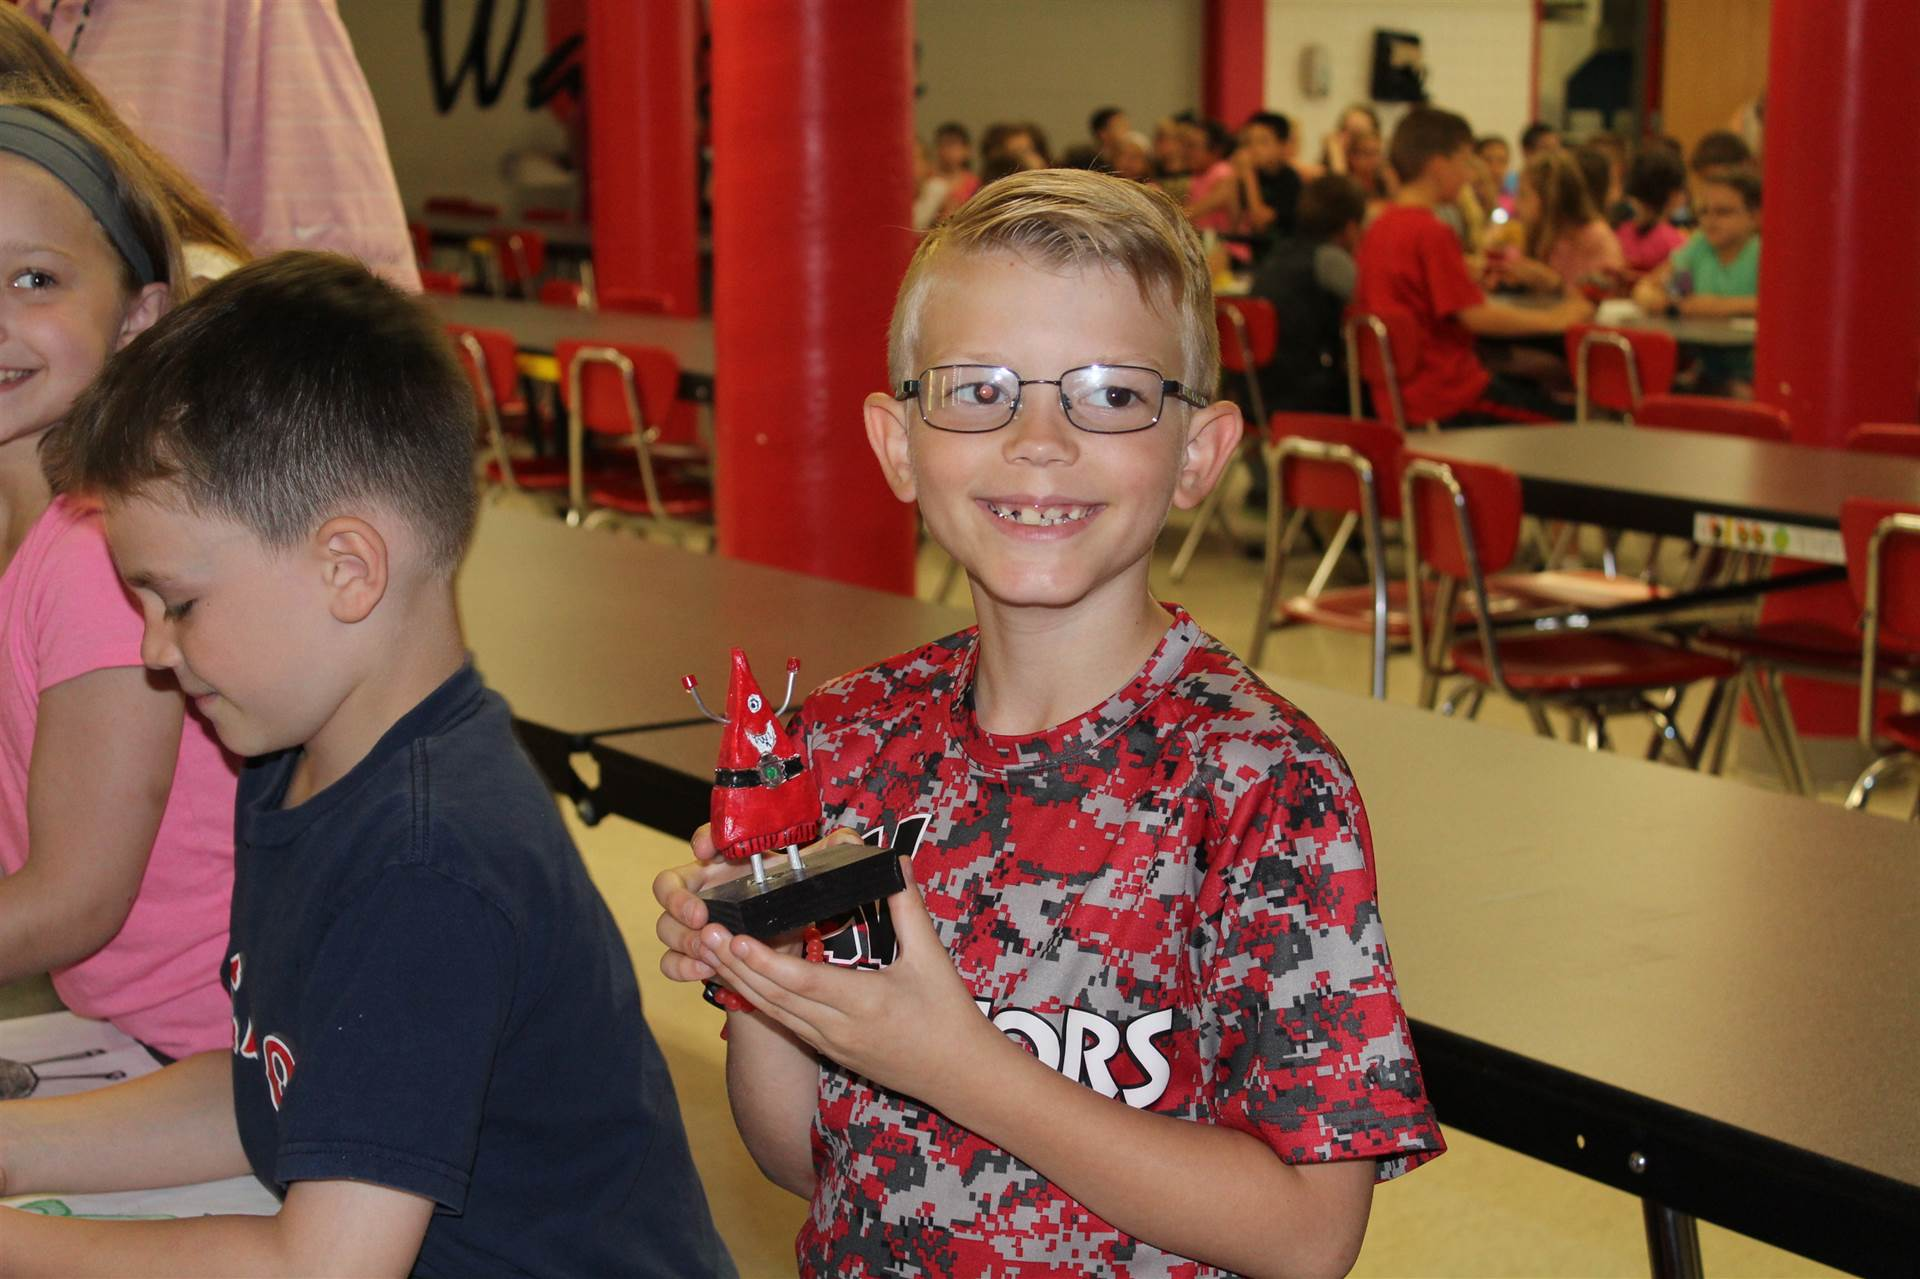 boy smiles with his red 3 d monster sculpture in hand.